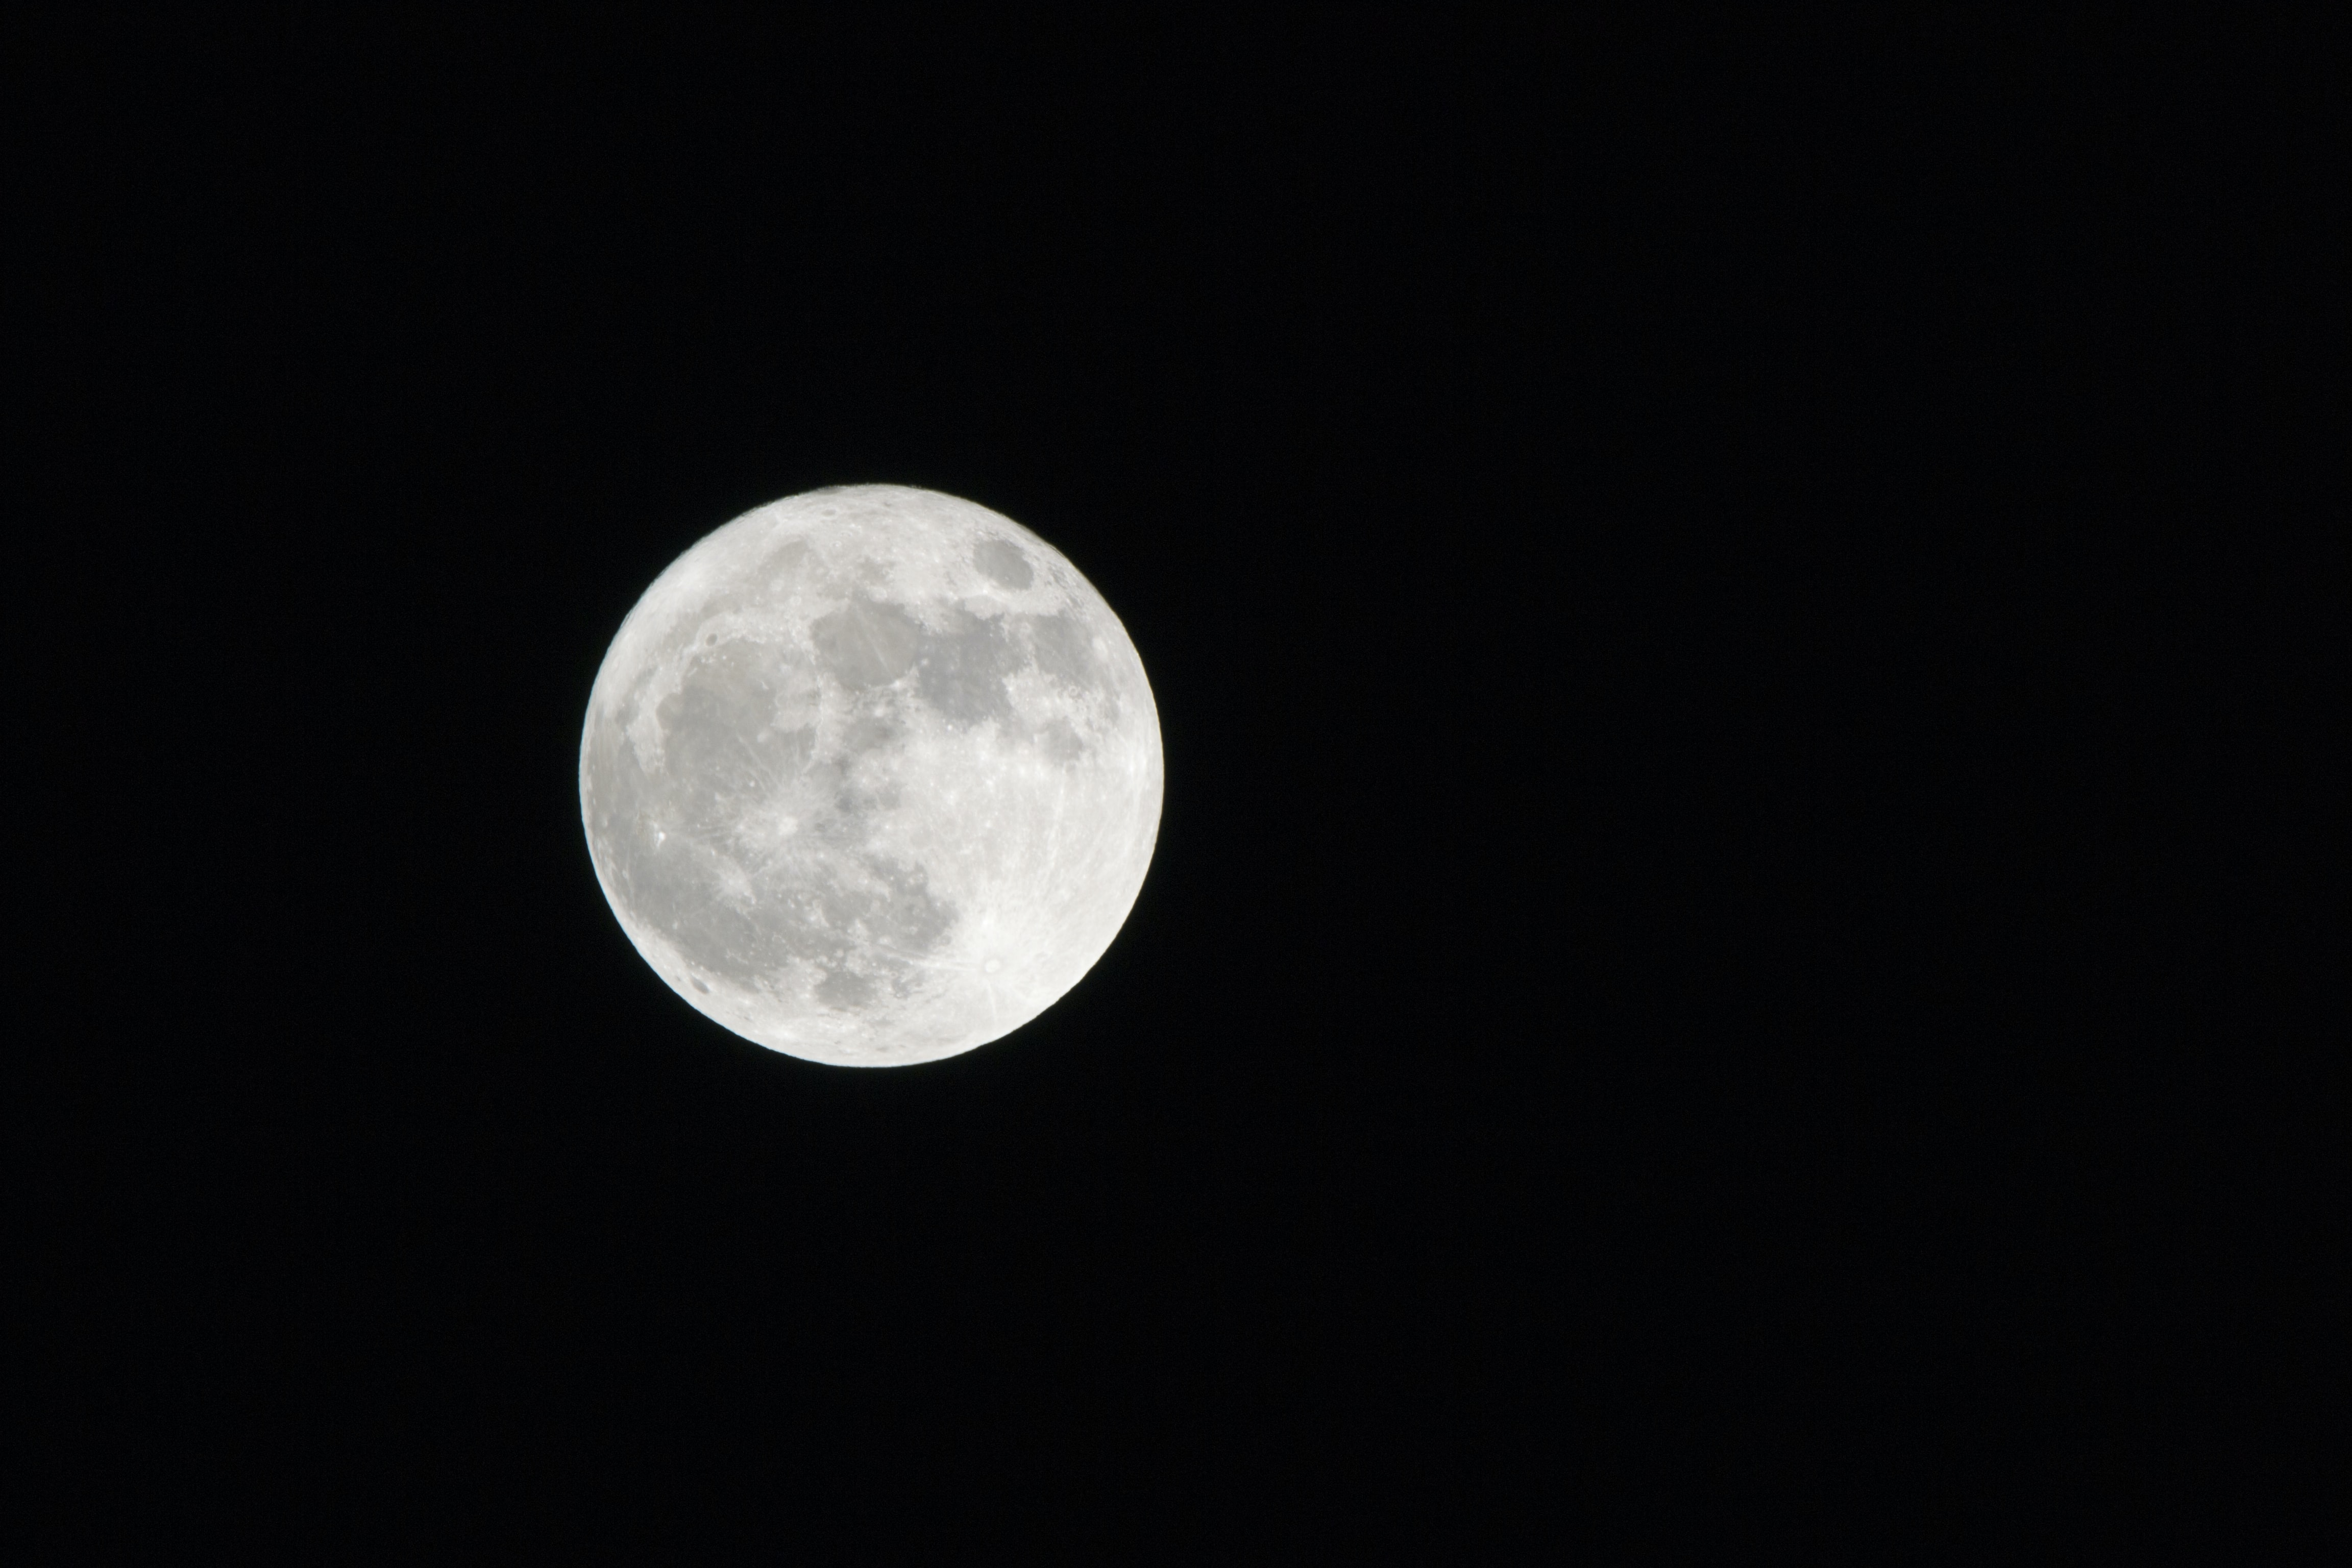 moon against back background